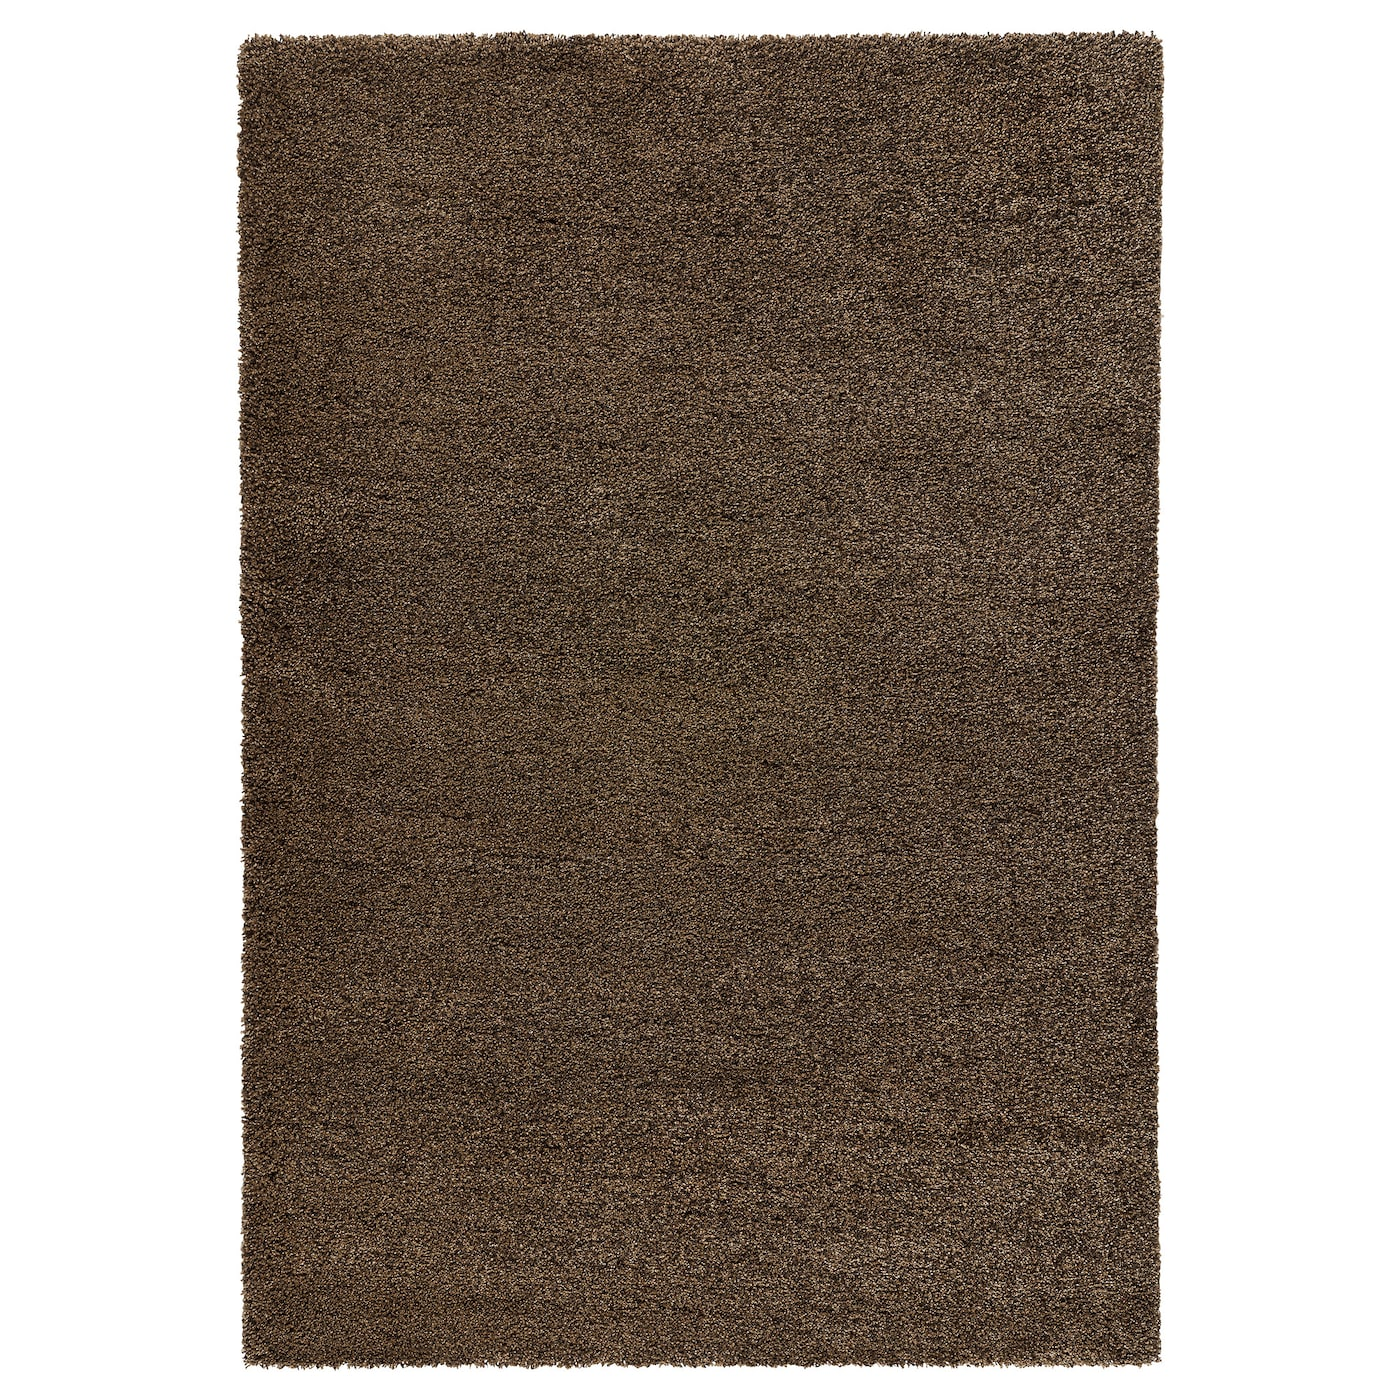 dark gb door textiles mats products jersie floor rugs ikea grey en mat